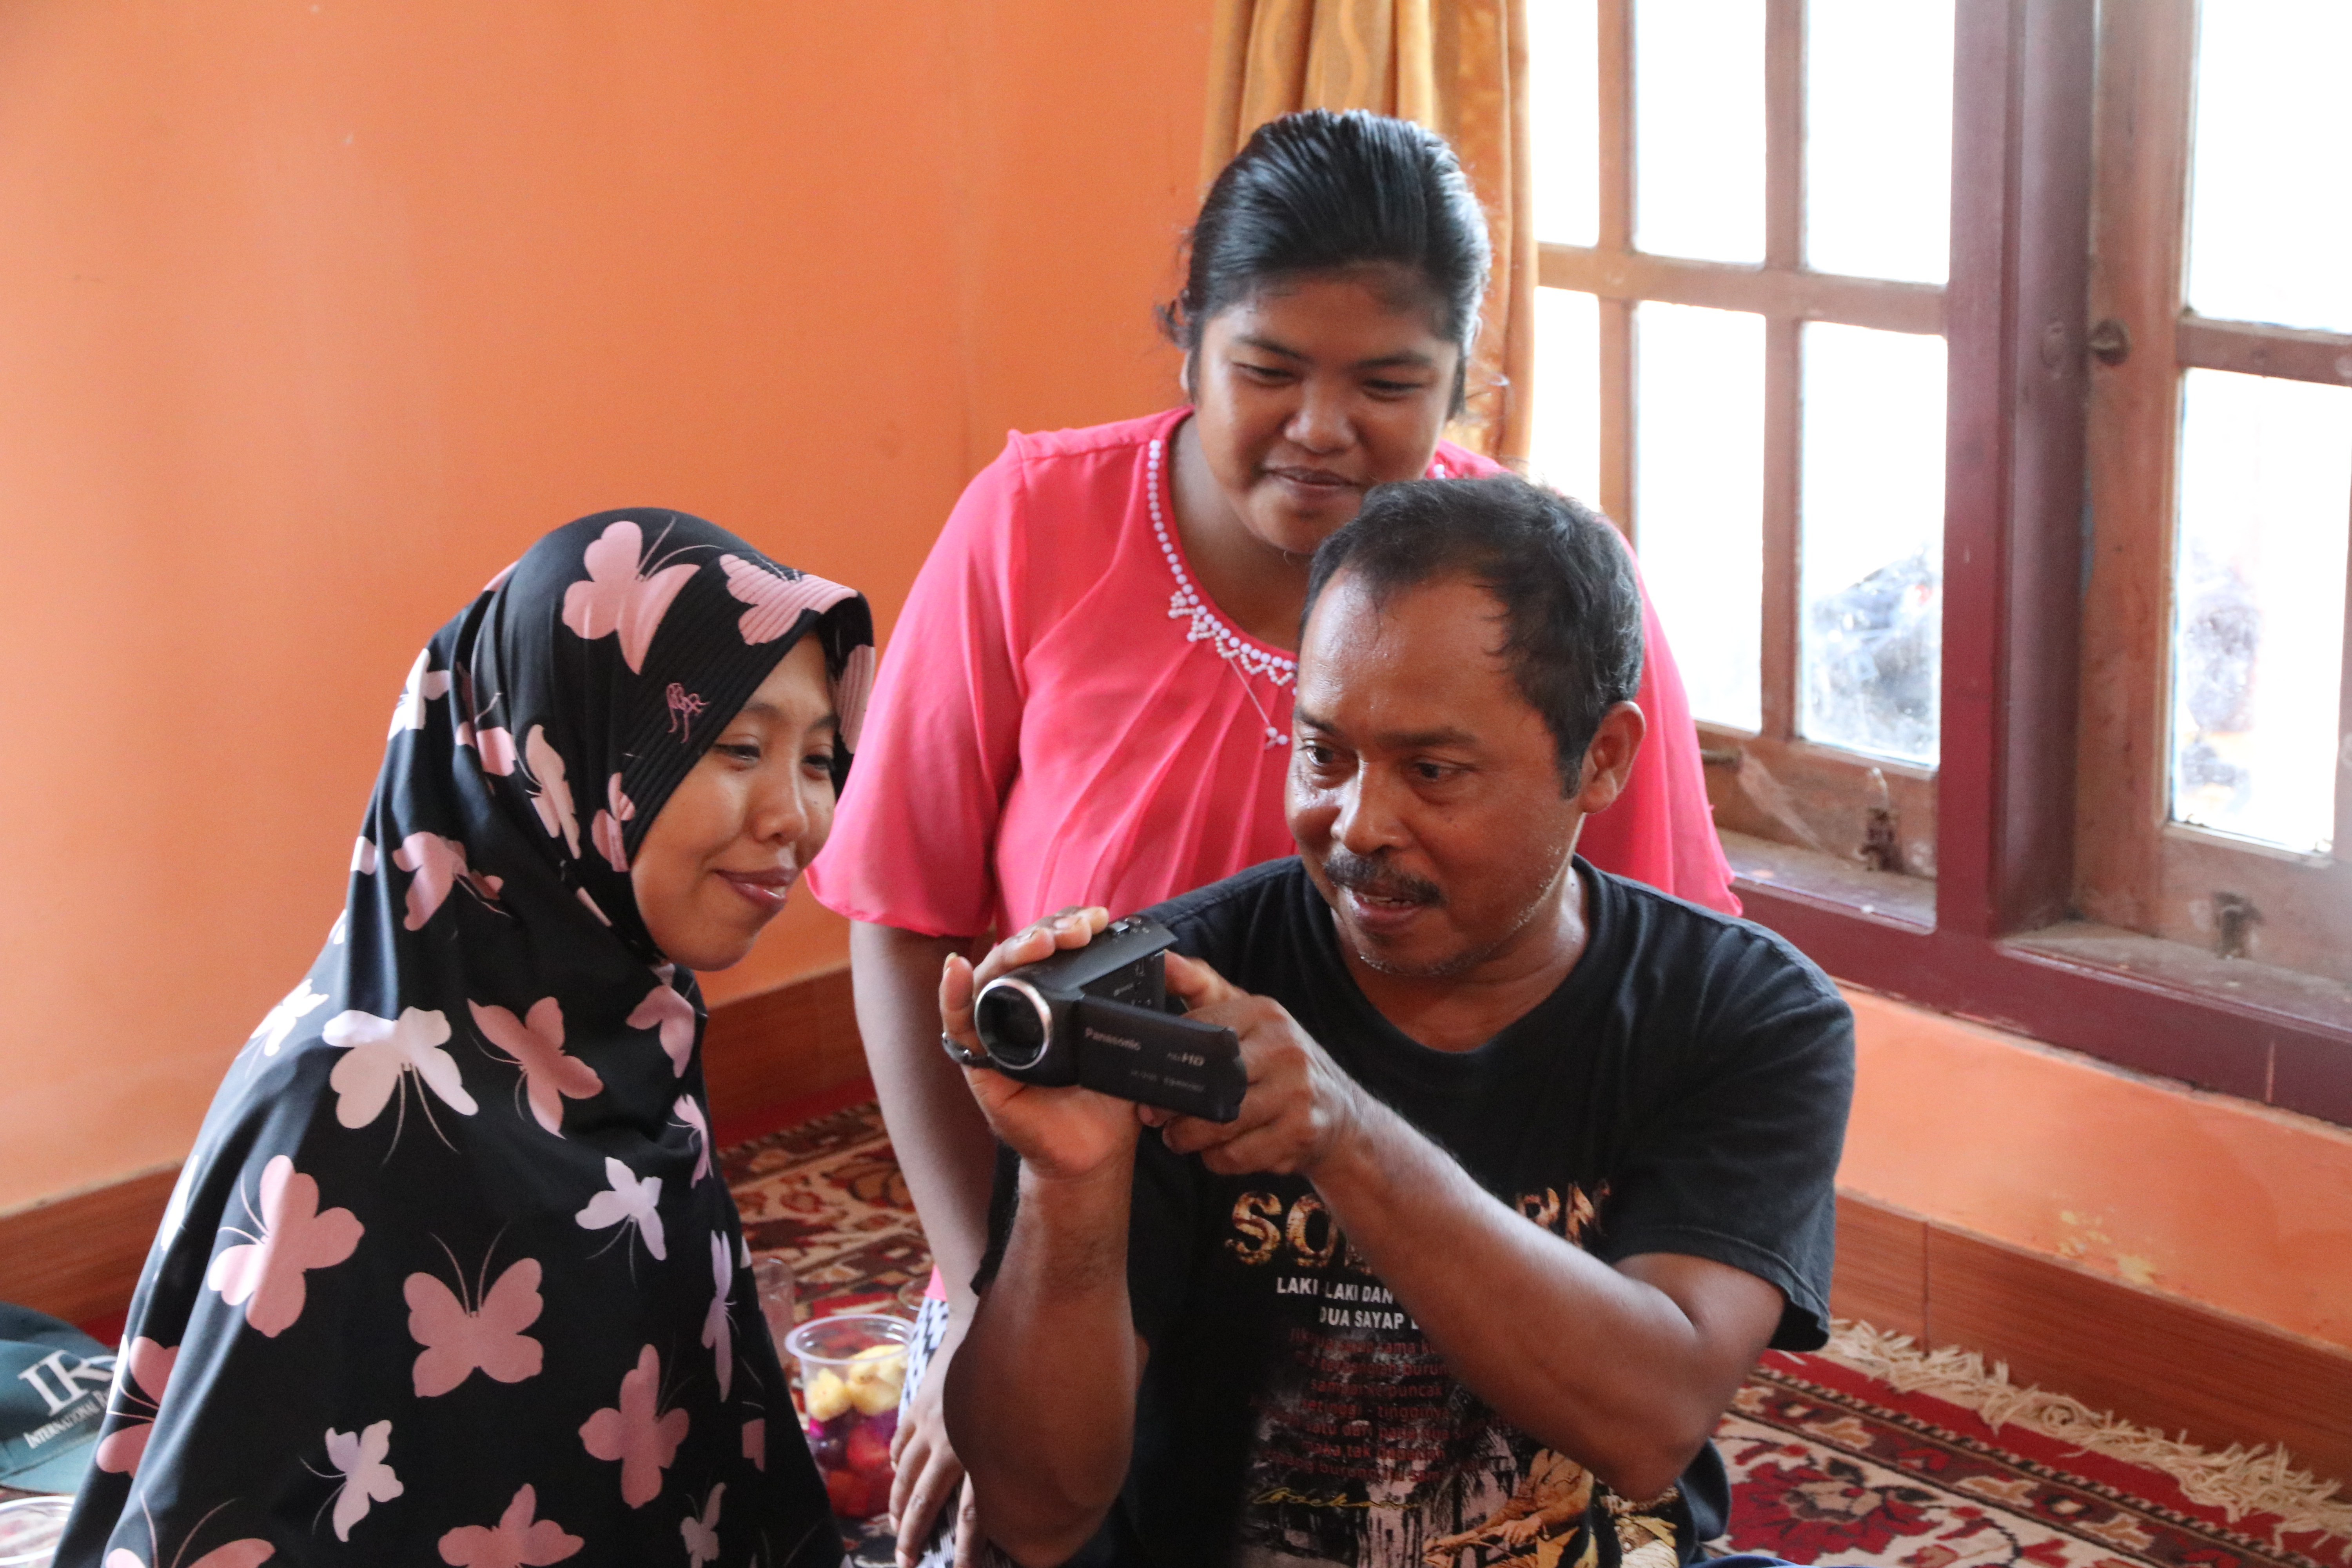 Mr. Wasikin, one of the outstanding farmers in 2016 and a participant in the participatory video training program, continues to produce videos with the help of his daughter and granddaughter. (Photo by R. Quilloy)